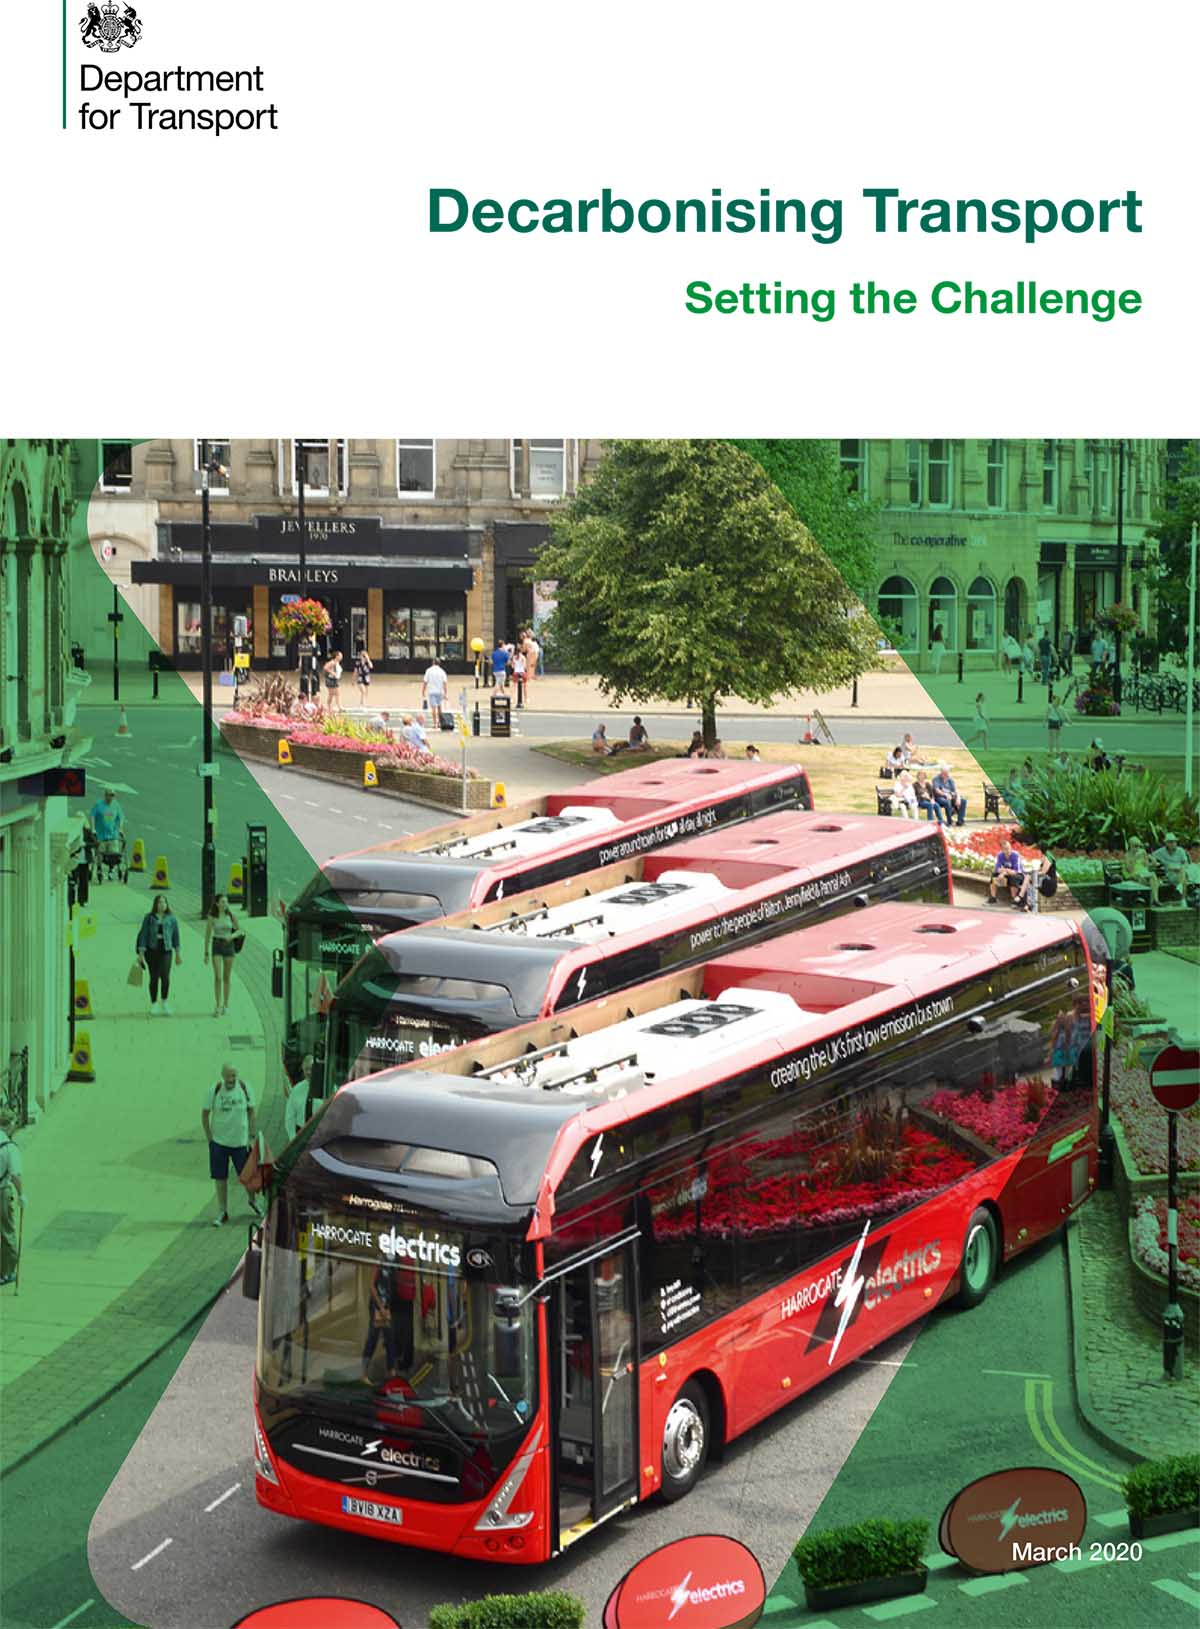 TramForward is disappointed with Department for Transport's latest publication.